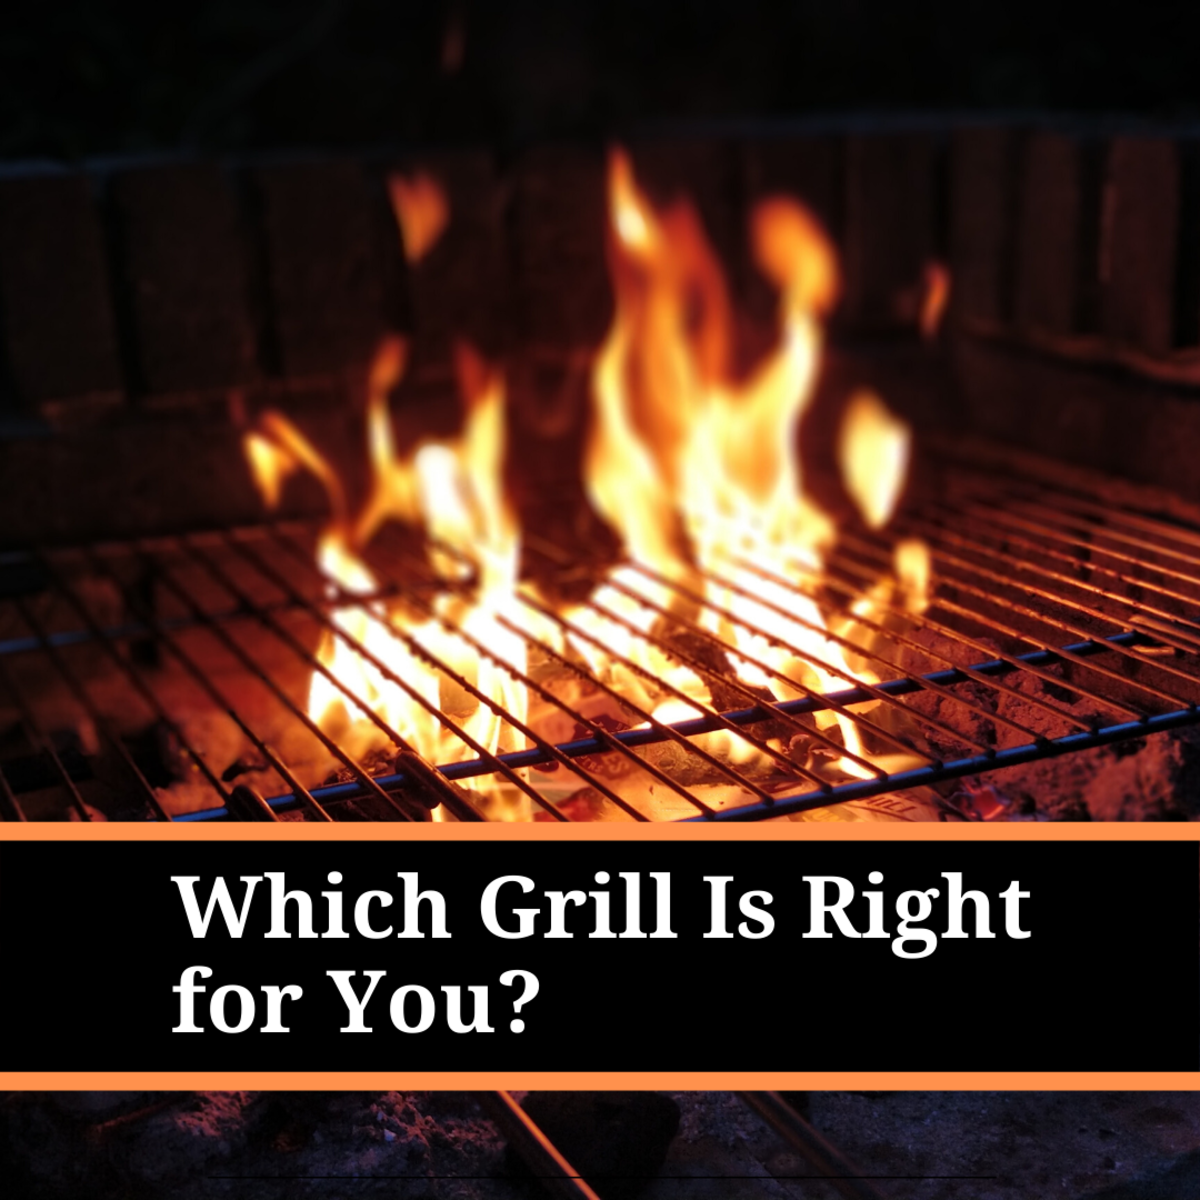 Struggling to find out which grill is right for you? Read on to learn what's right for you.